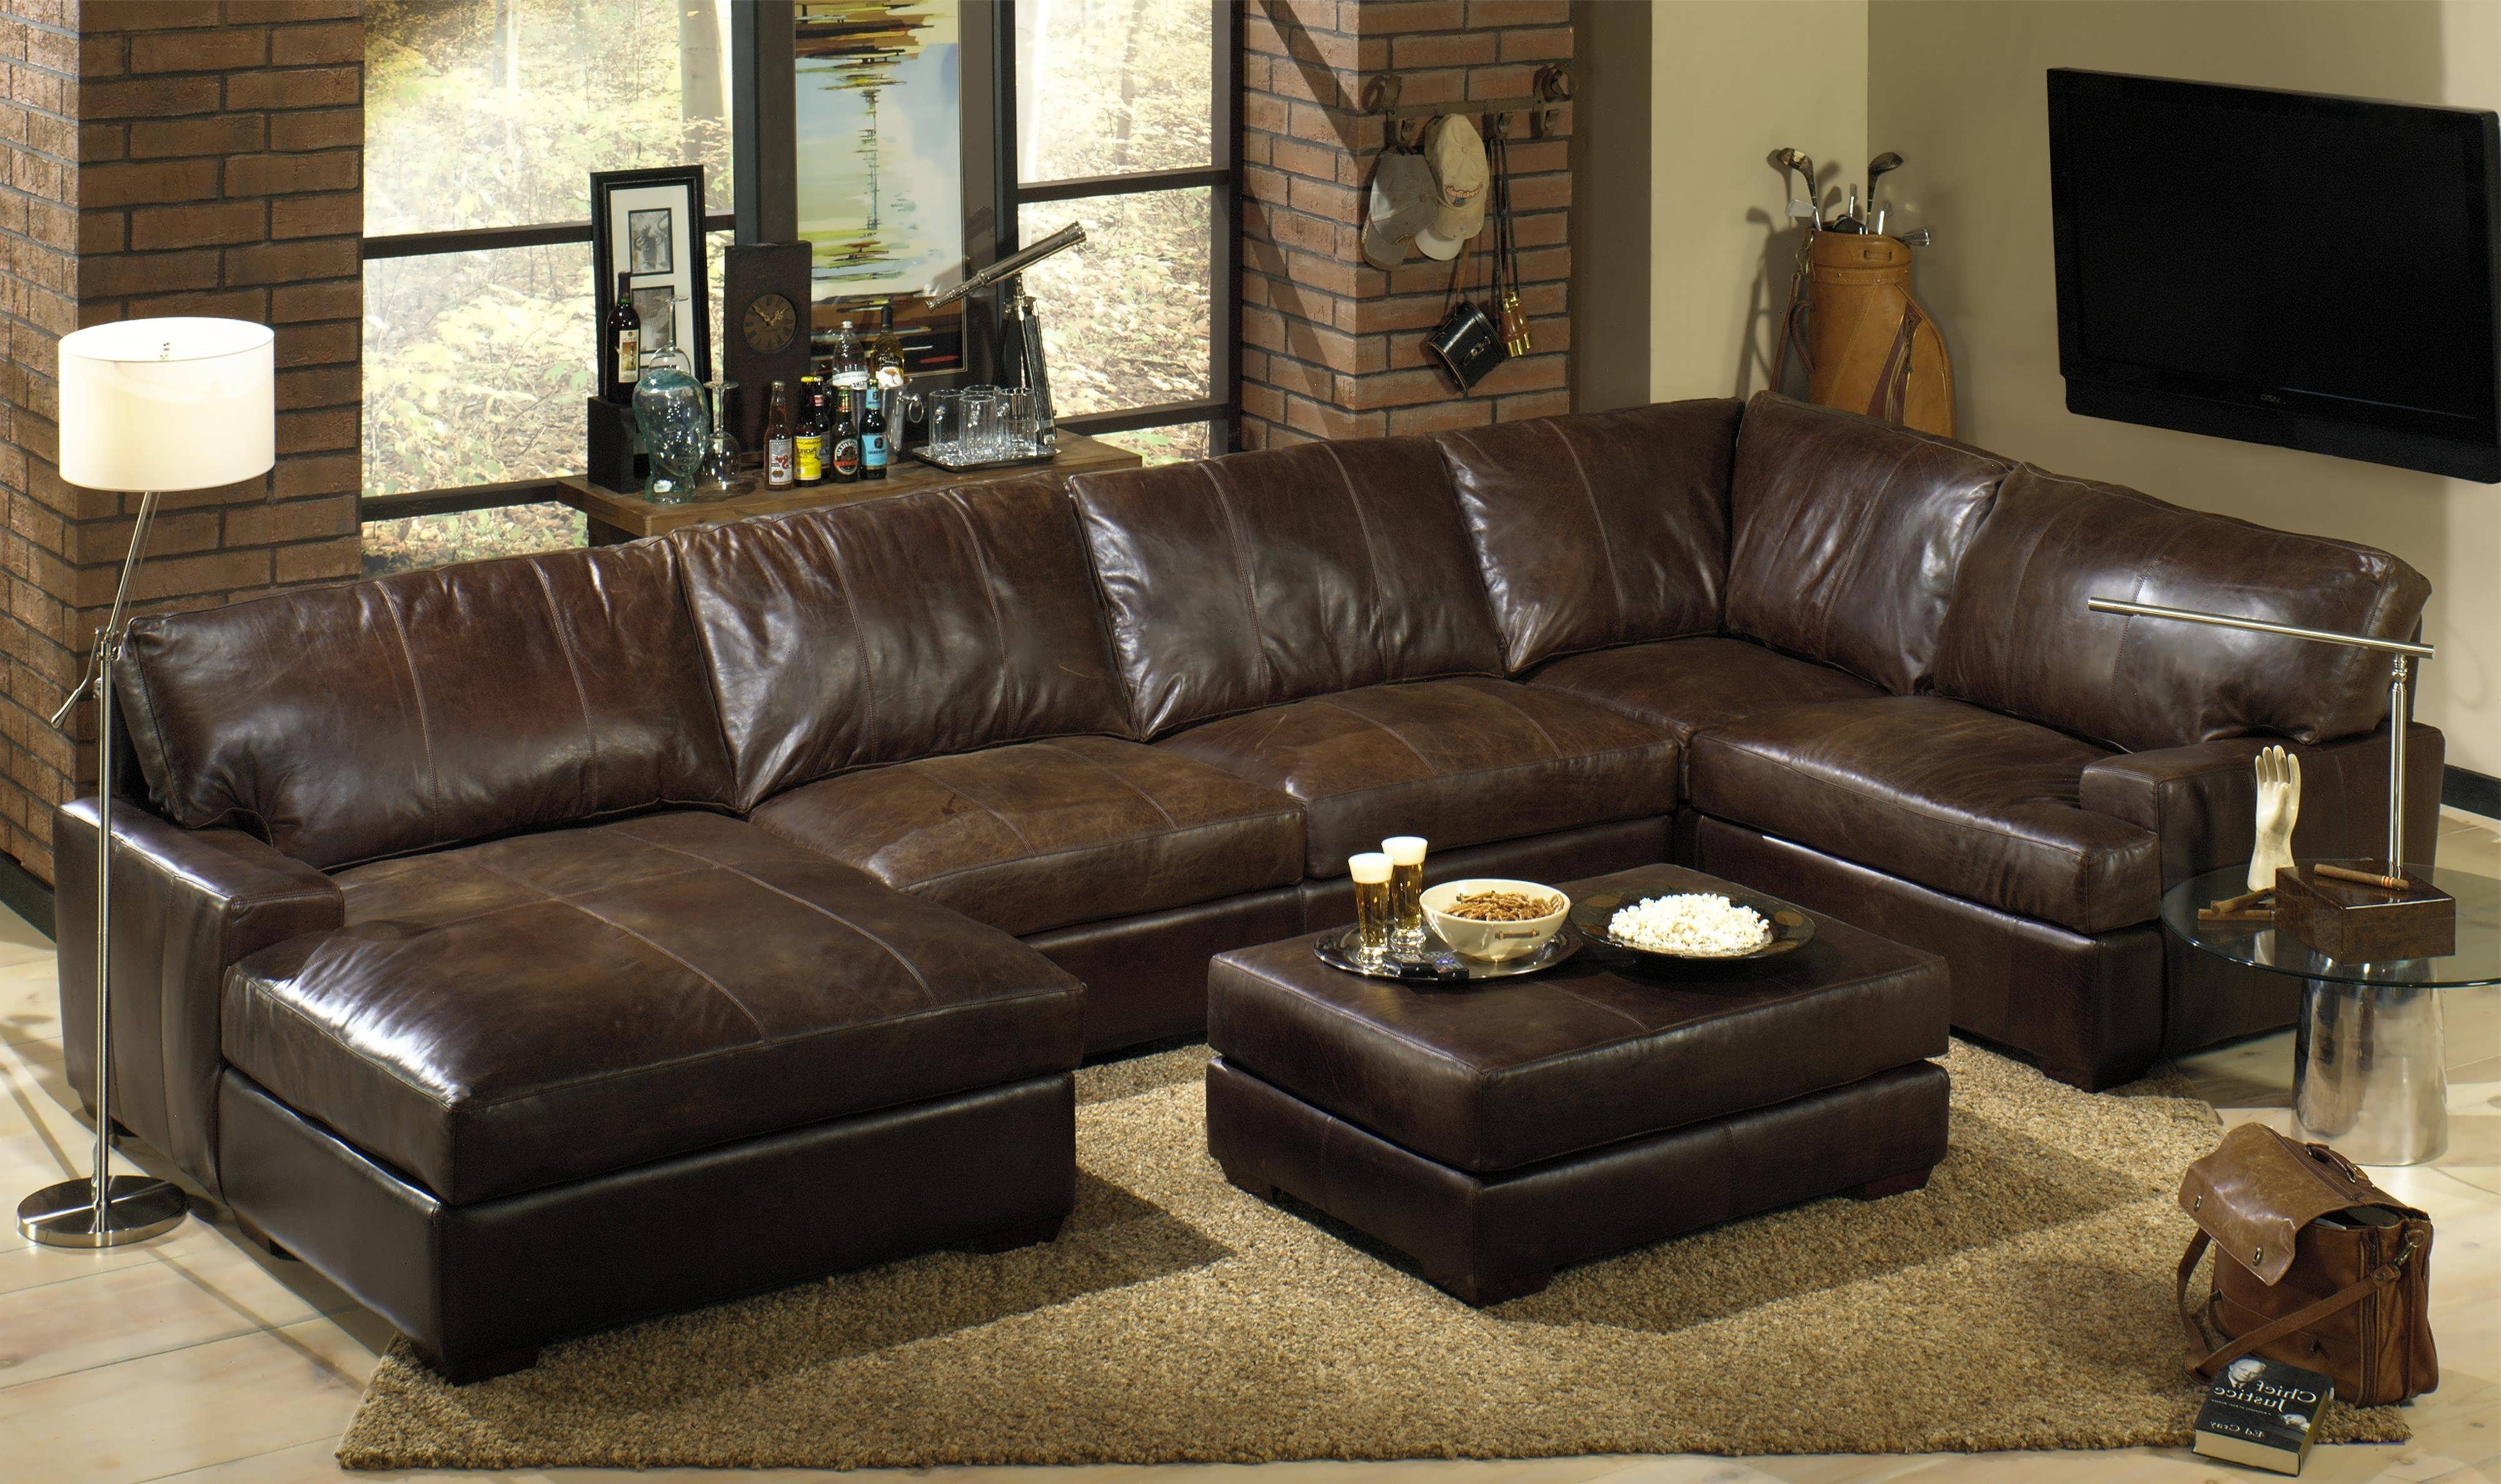 Preferred Sofa : Chaise Sofa Sectional With Chaise And Recliner White Regarding Leather Sofas With Chaise (View 4 of 15)